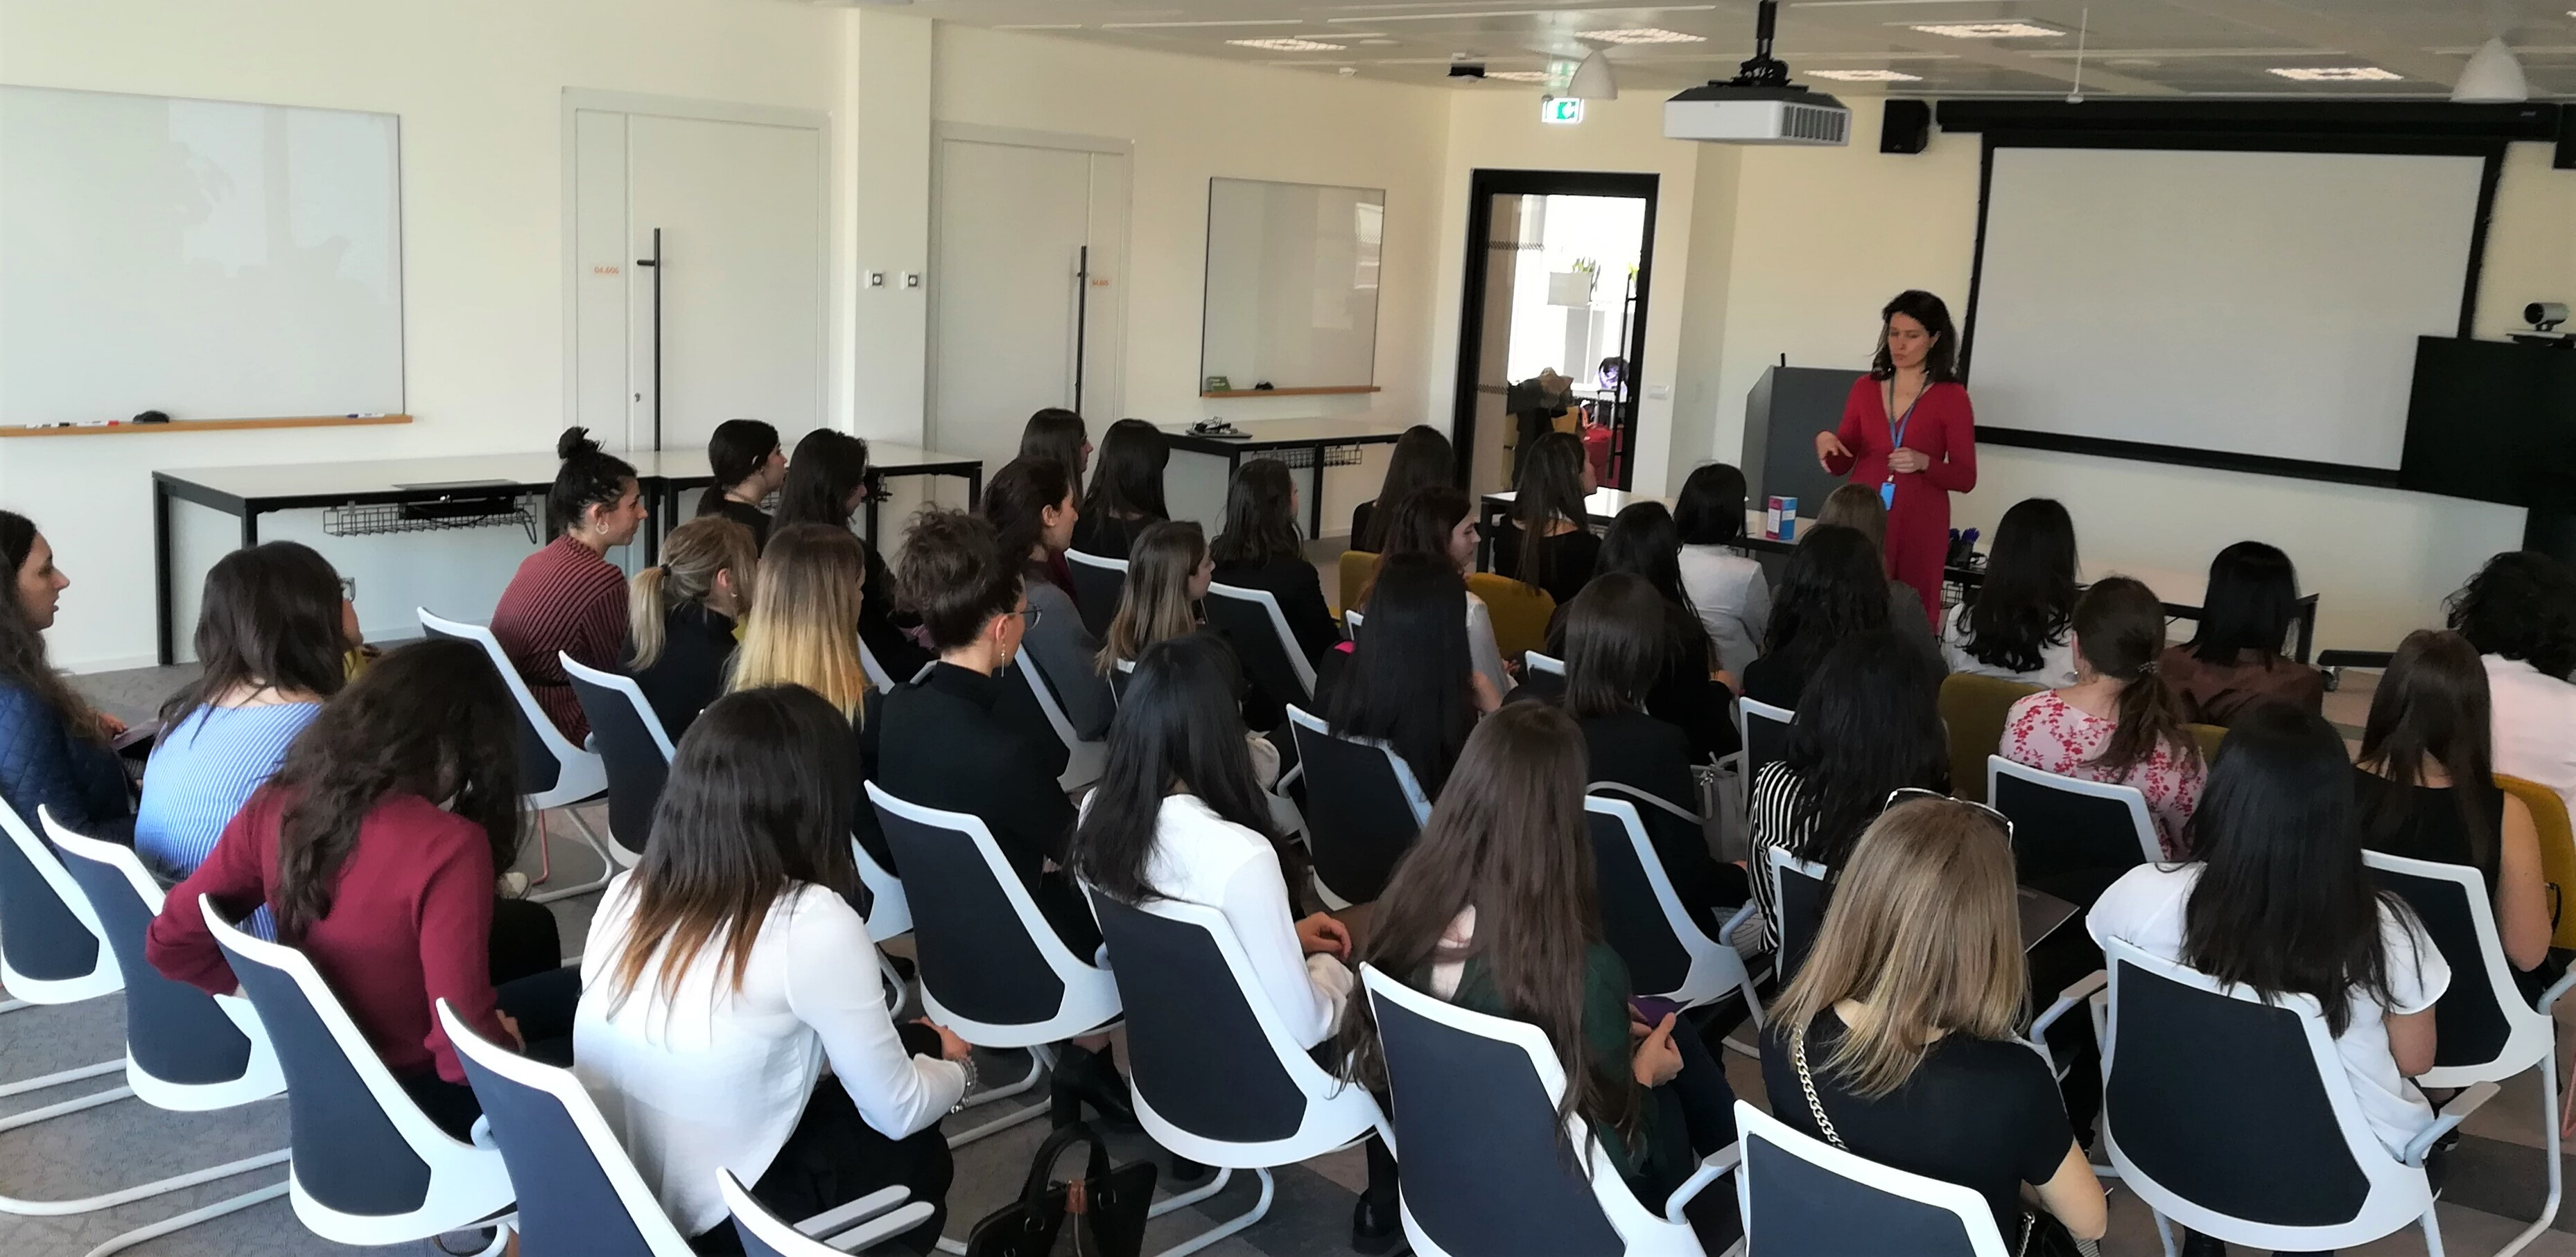 International Women's Day celebrated at Bocconi University